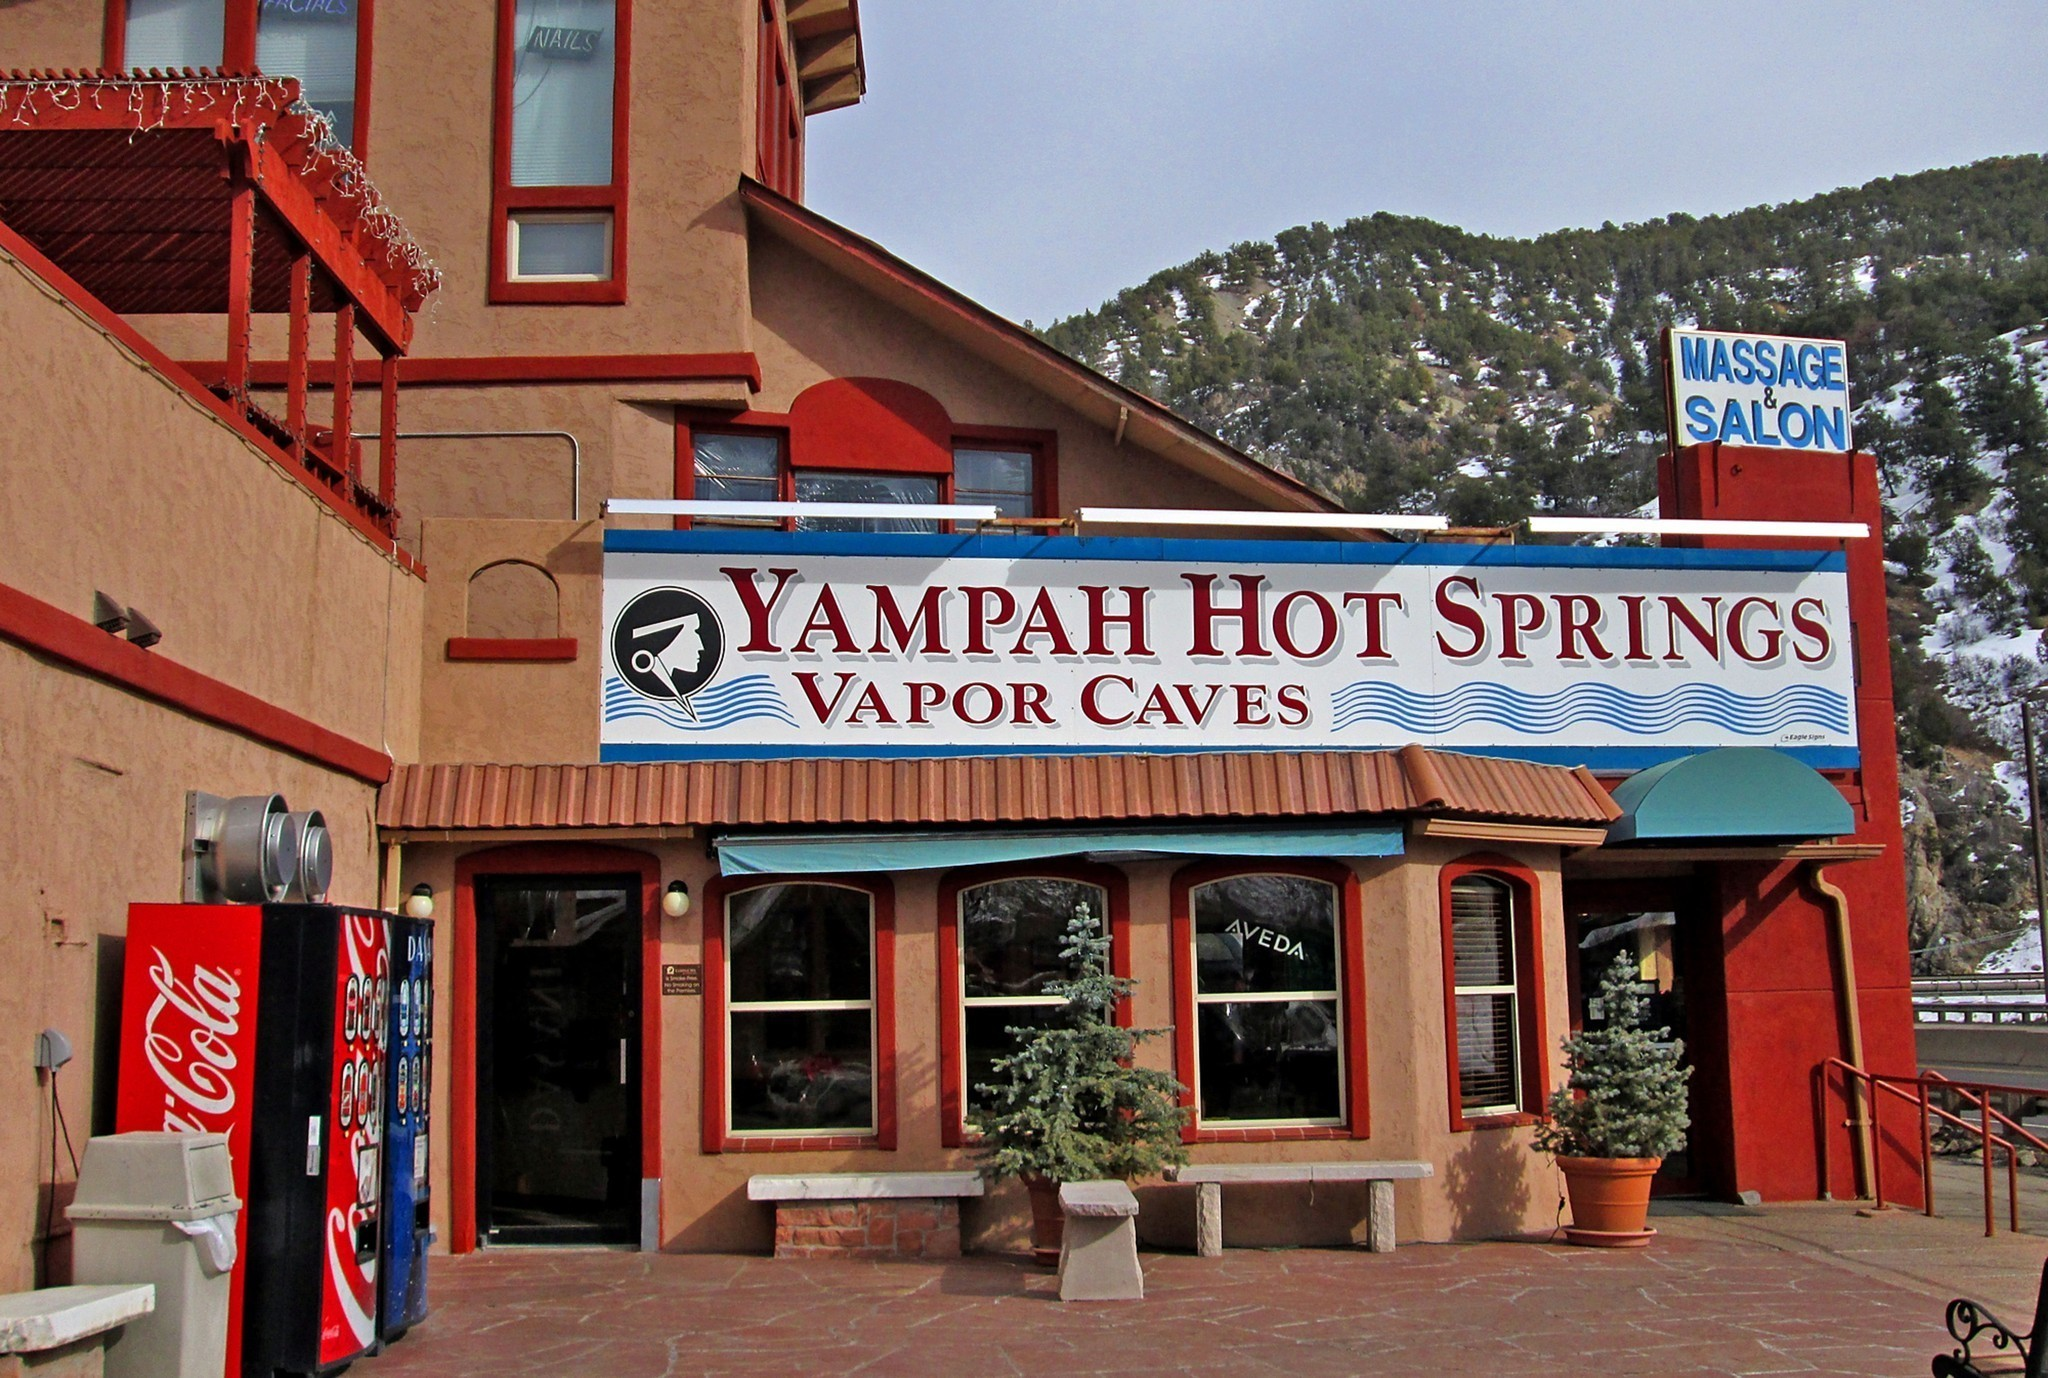 Yampah Spa and Hot Springs